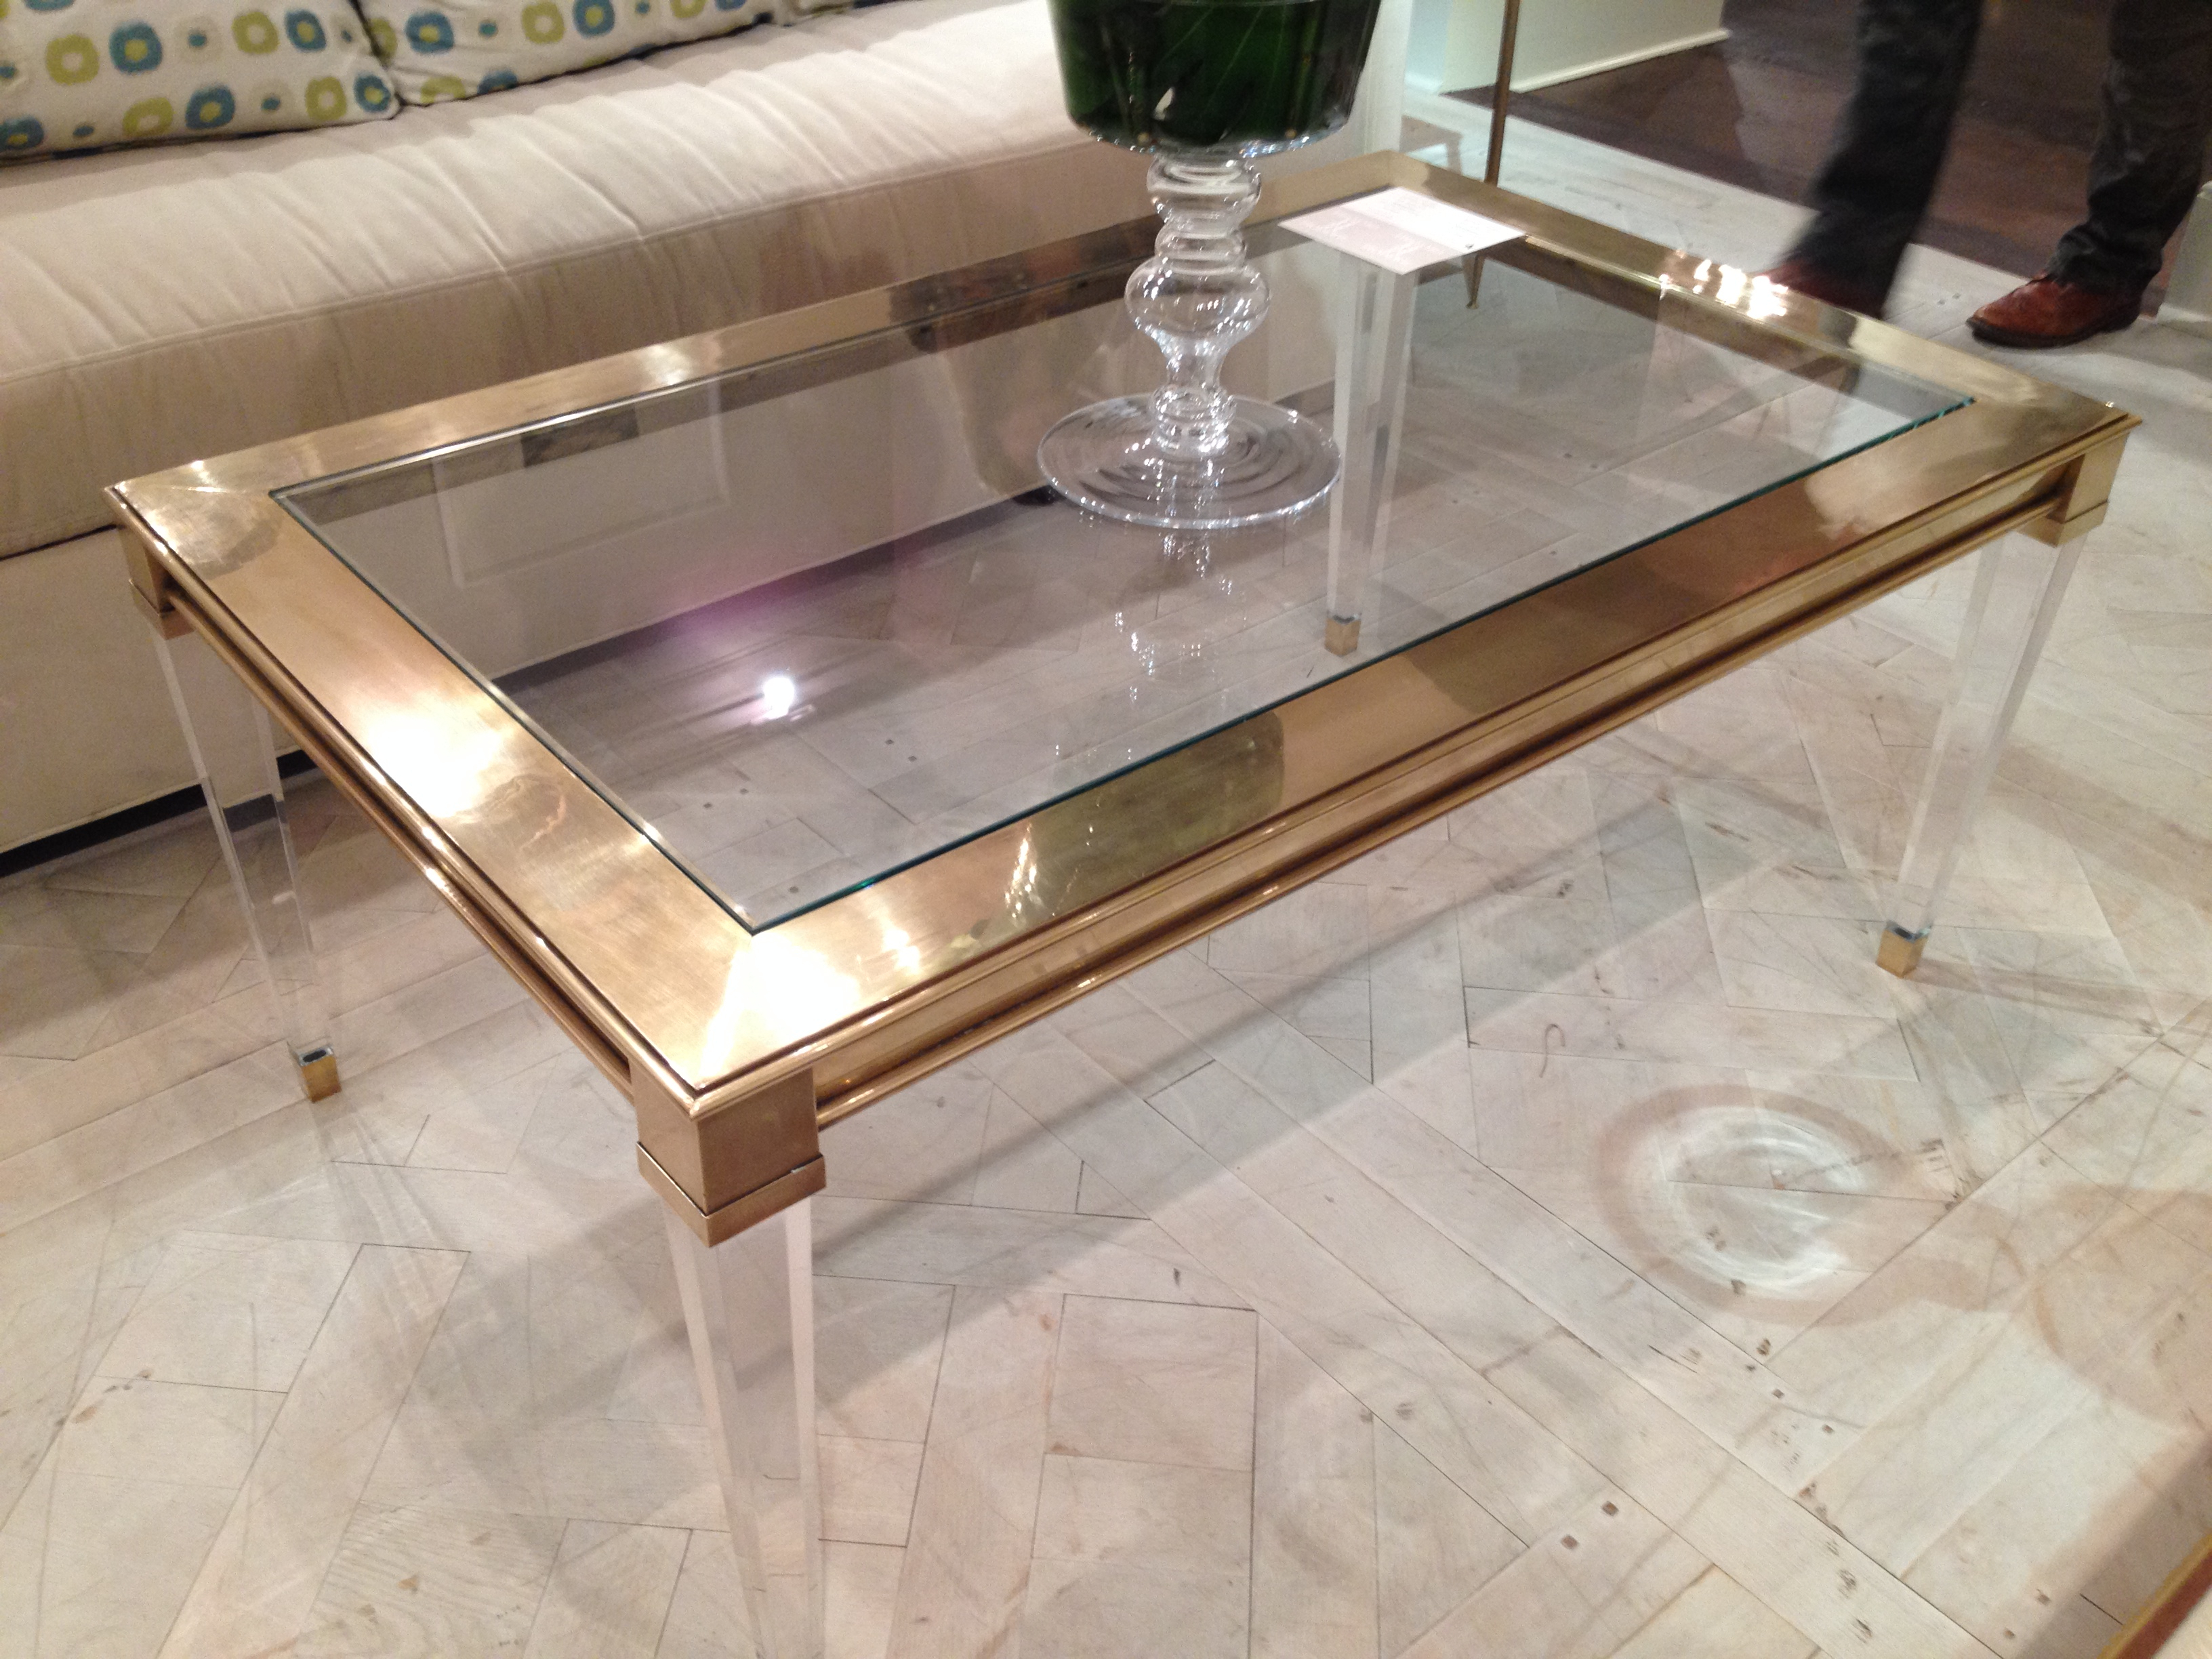 2019 Salma Acrylic And Brass Coffee Table – Mecox Gardens For Acrylic Glass And Brass Coffee Tables (Gallery 8 of 20)